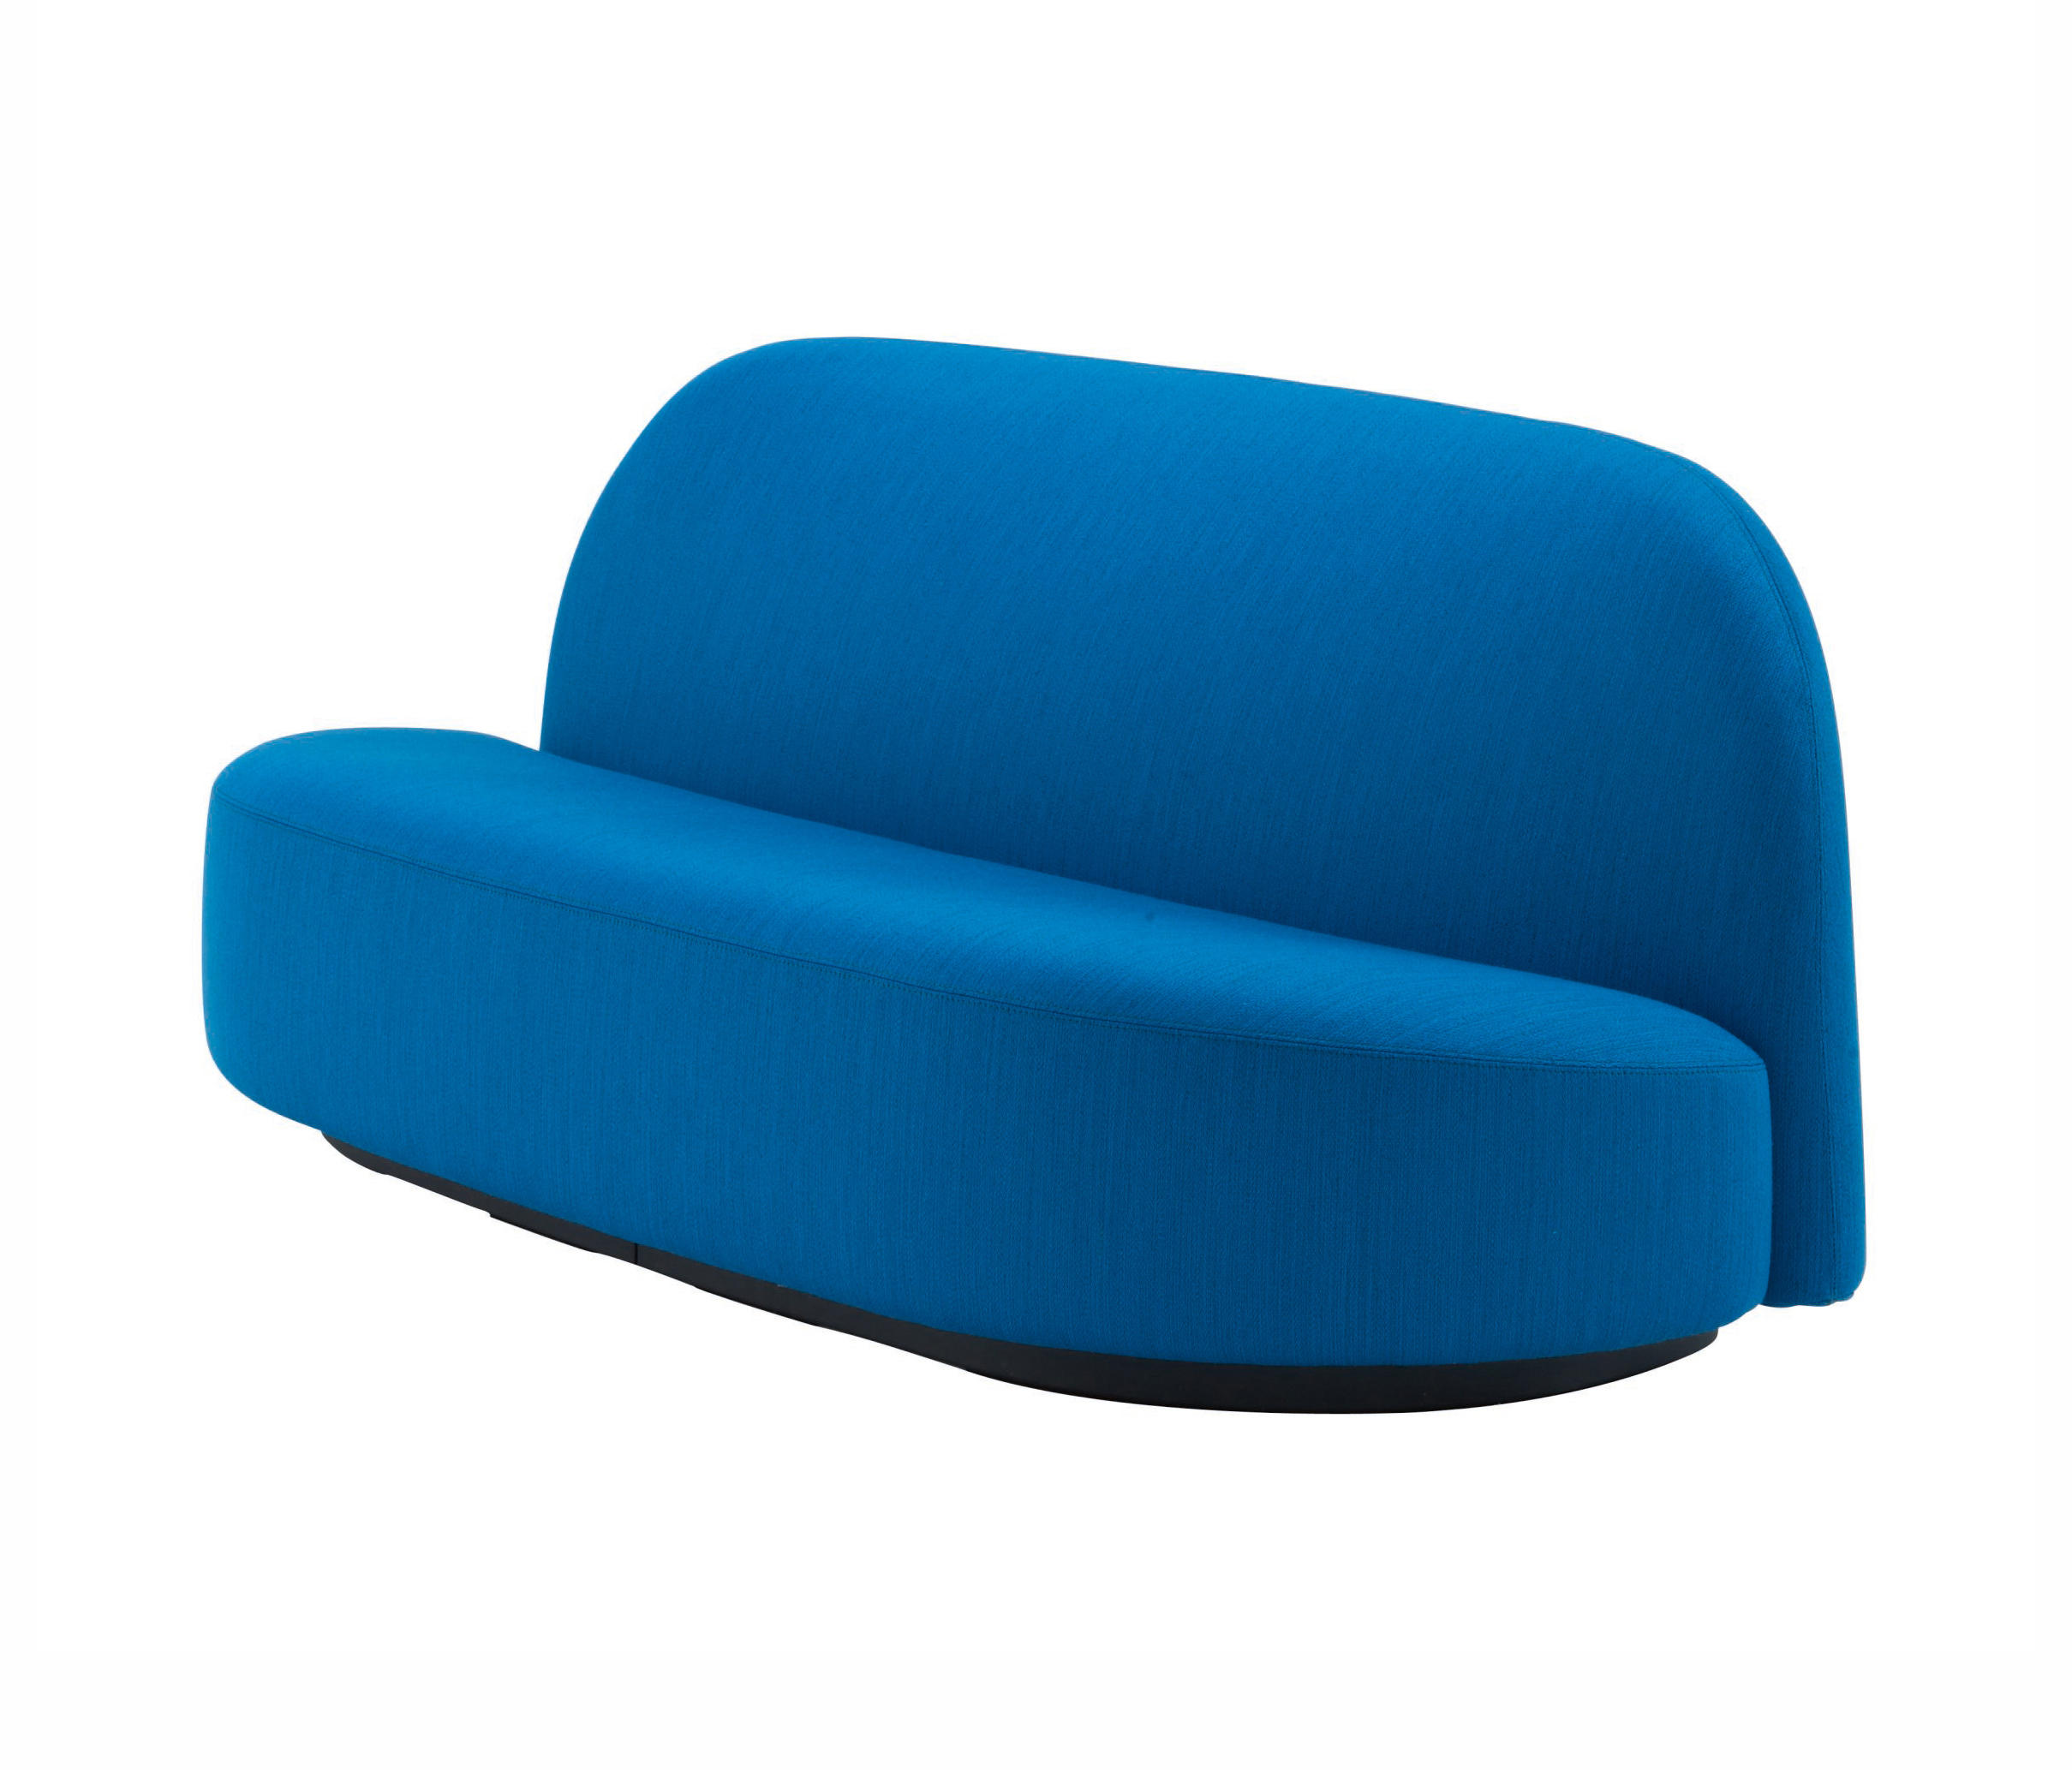 Elysee Small Settee By Ligne Roset Sofas